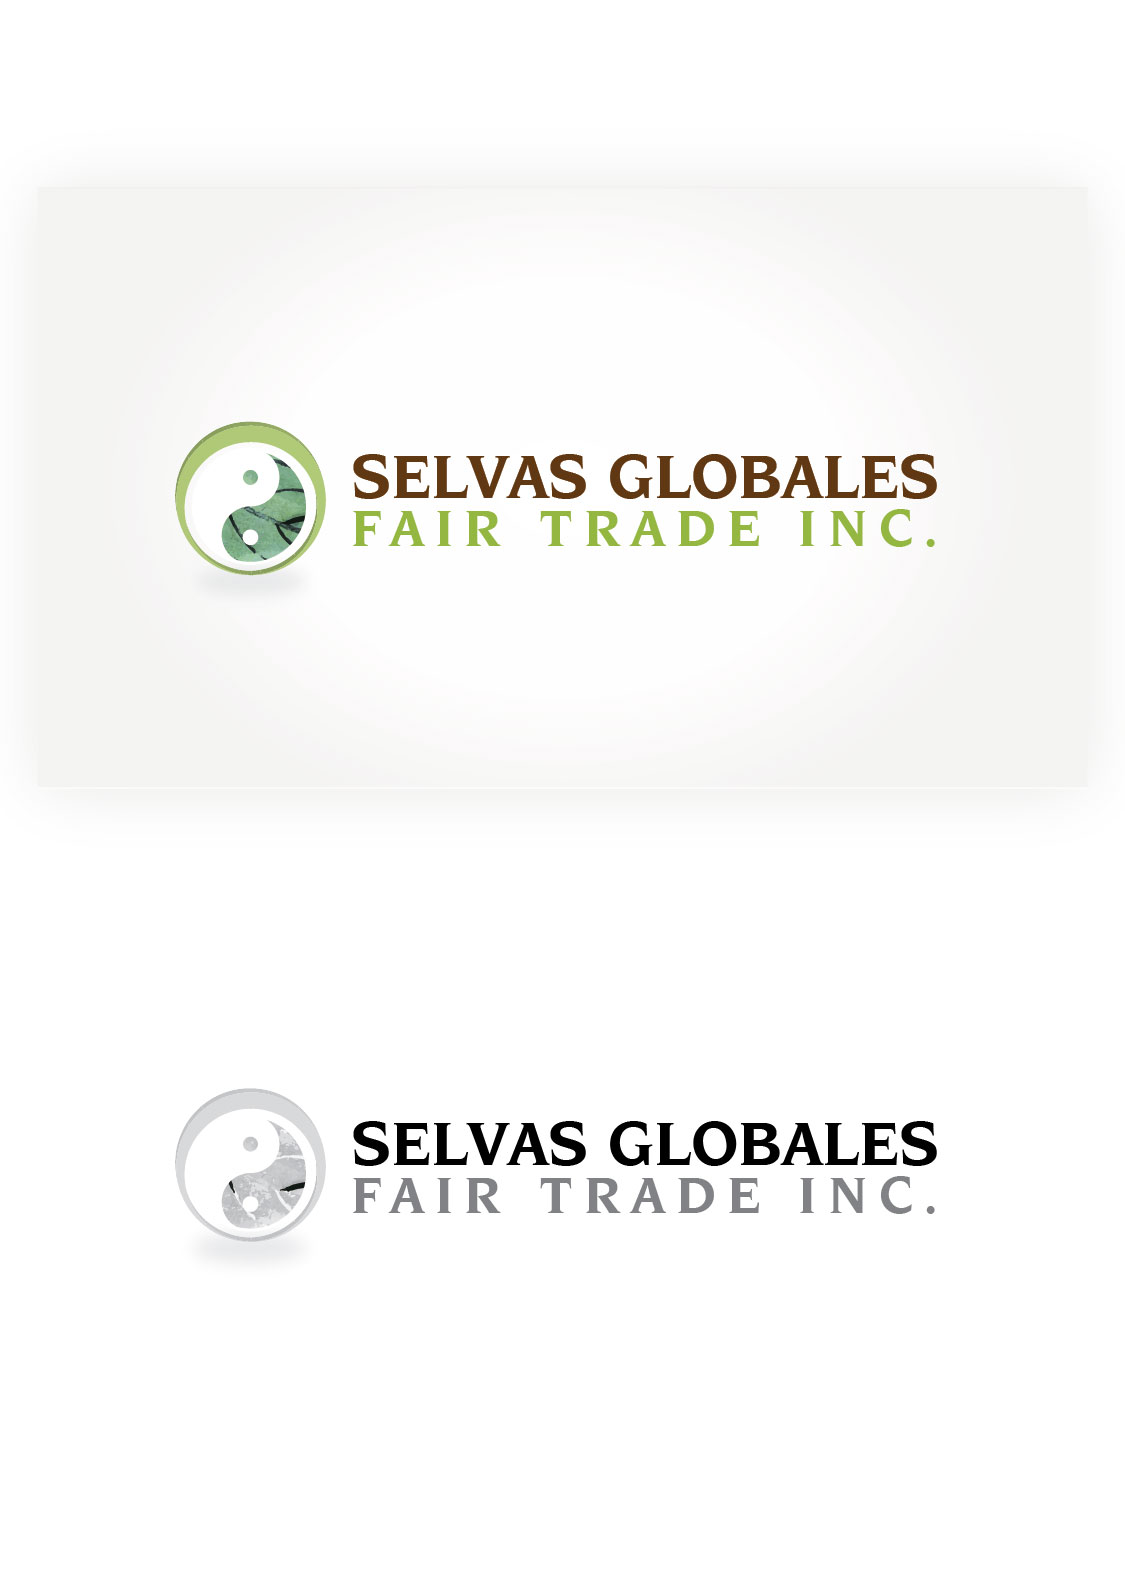 Logo Design by Gnnosch - Entry No. 153 in the Logo Design Contest Captivating Logo Design for Selvas Globales Fair Trade Inc..